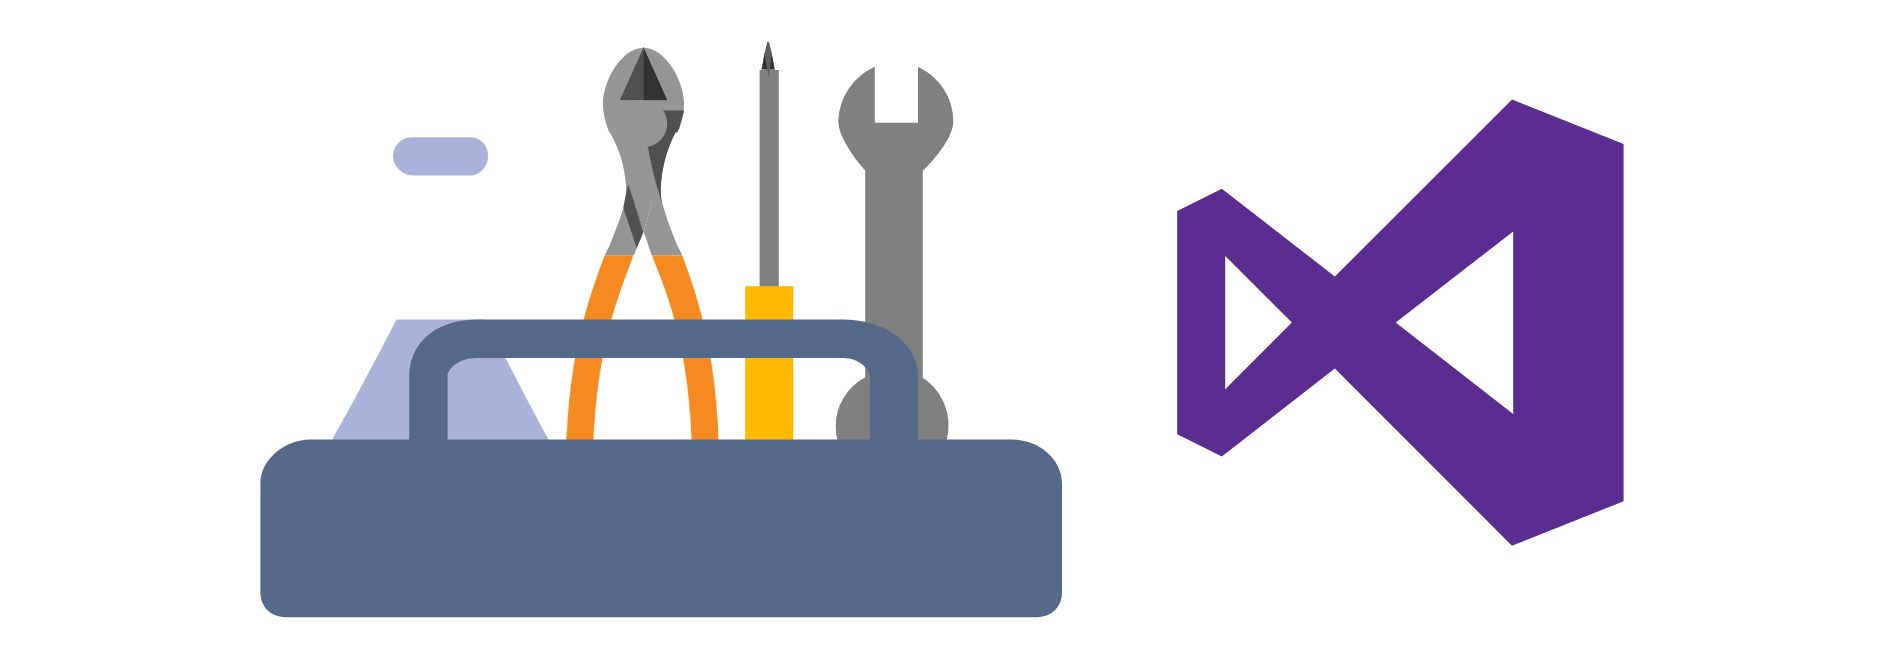 How to run Visual Studio 2017 projects using Build Tools for Visual Studio